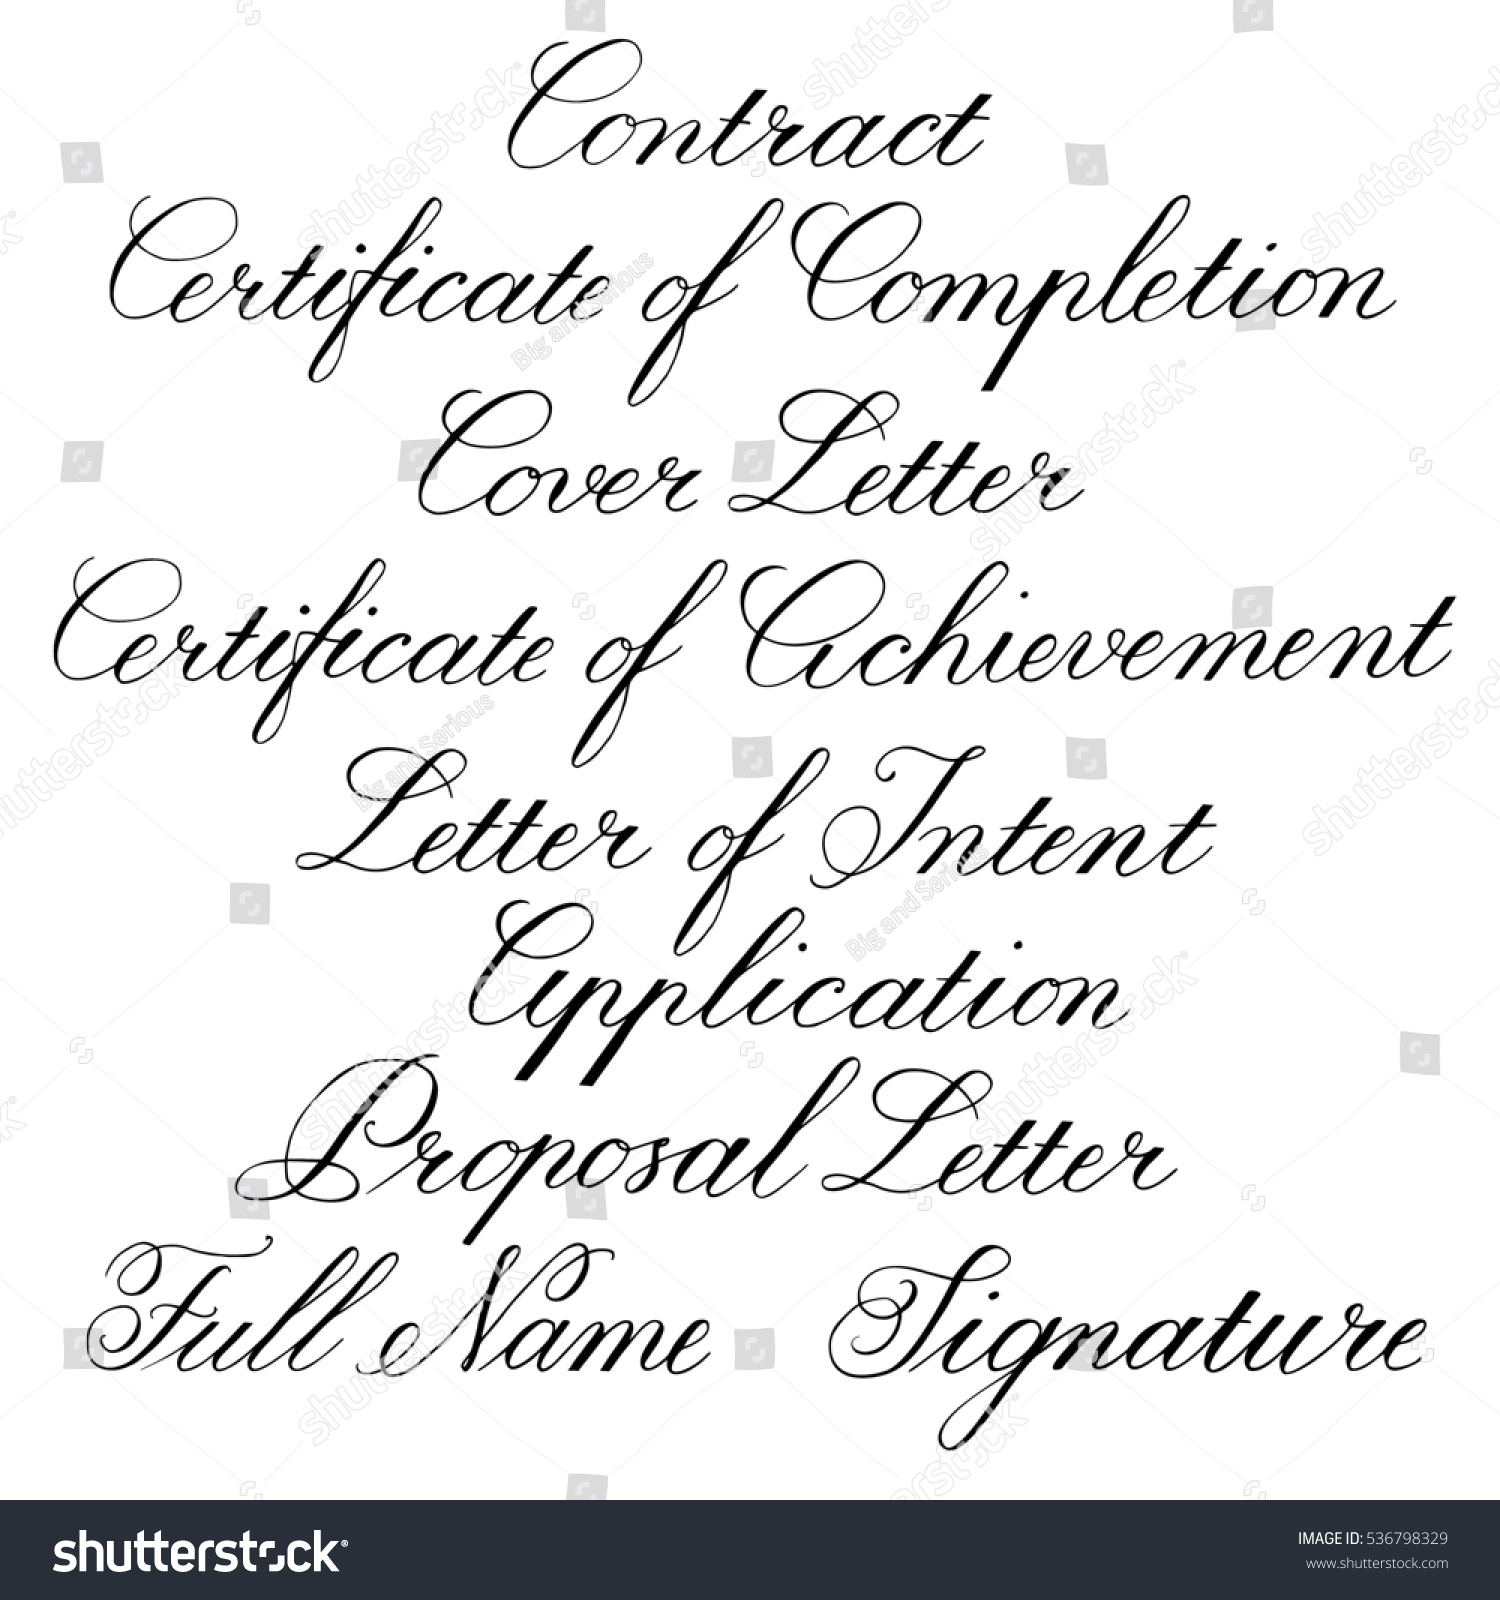 Copperplate Calligraphy Font Free Handwritten Calligraphic Tag Lines Business Documents Stock